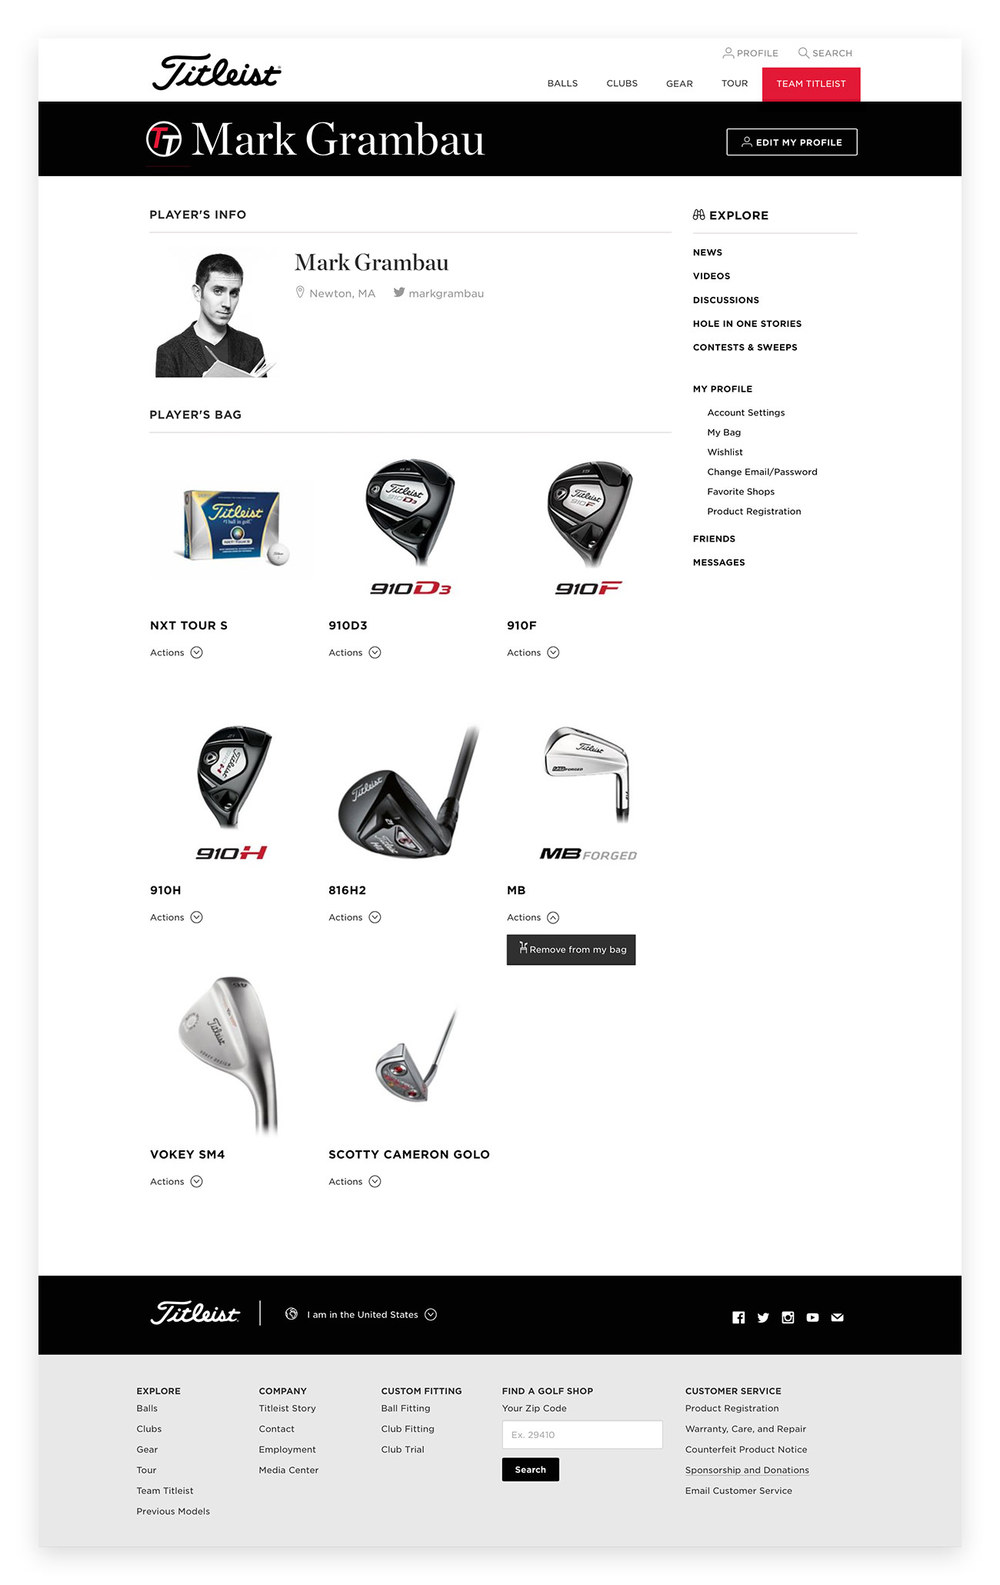 Team-Titleist-profile.jpg